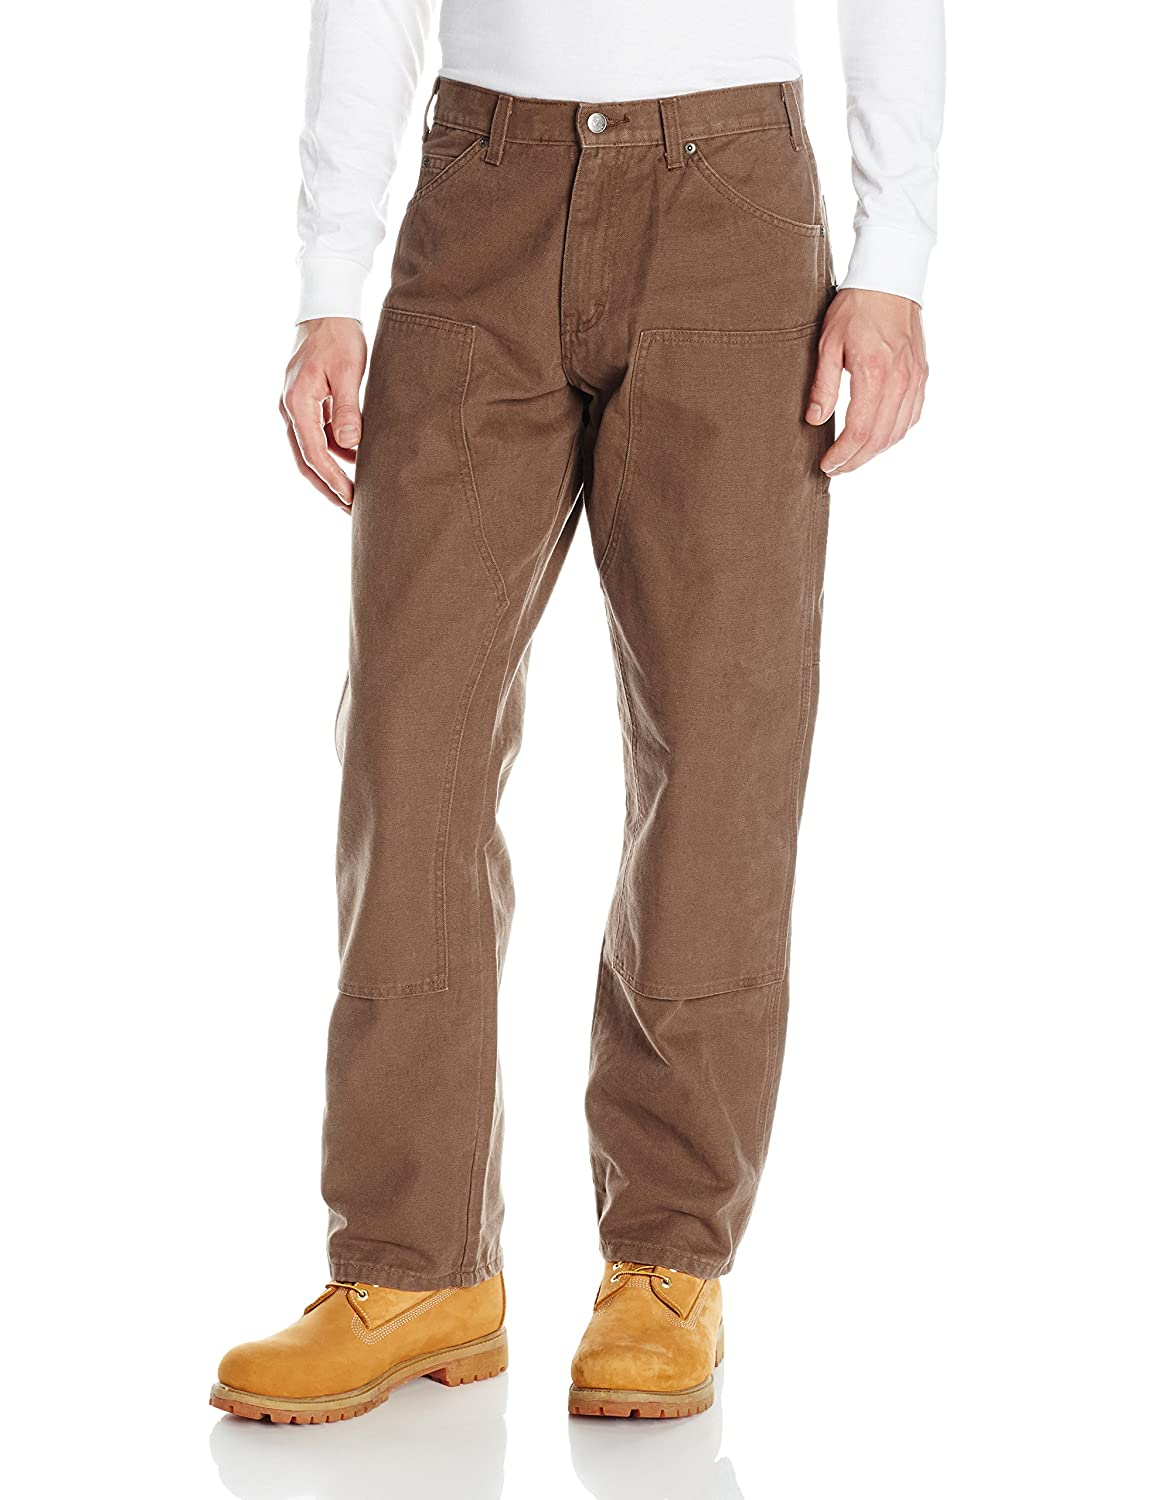 Dickies PANTS メンズ B01M5GFZ8V 30W x 30L|リンスドティンバー(Rinsed Timber) リンスドティンバー(Rinsed Timber) 30W x 30L